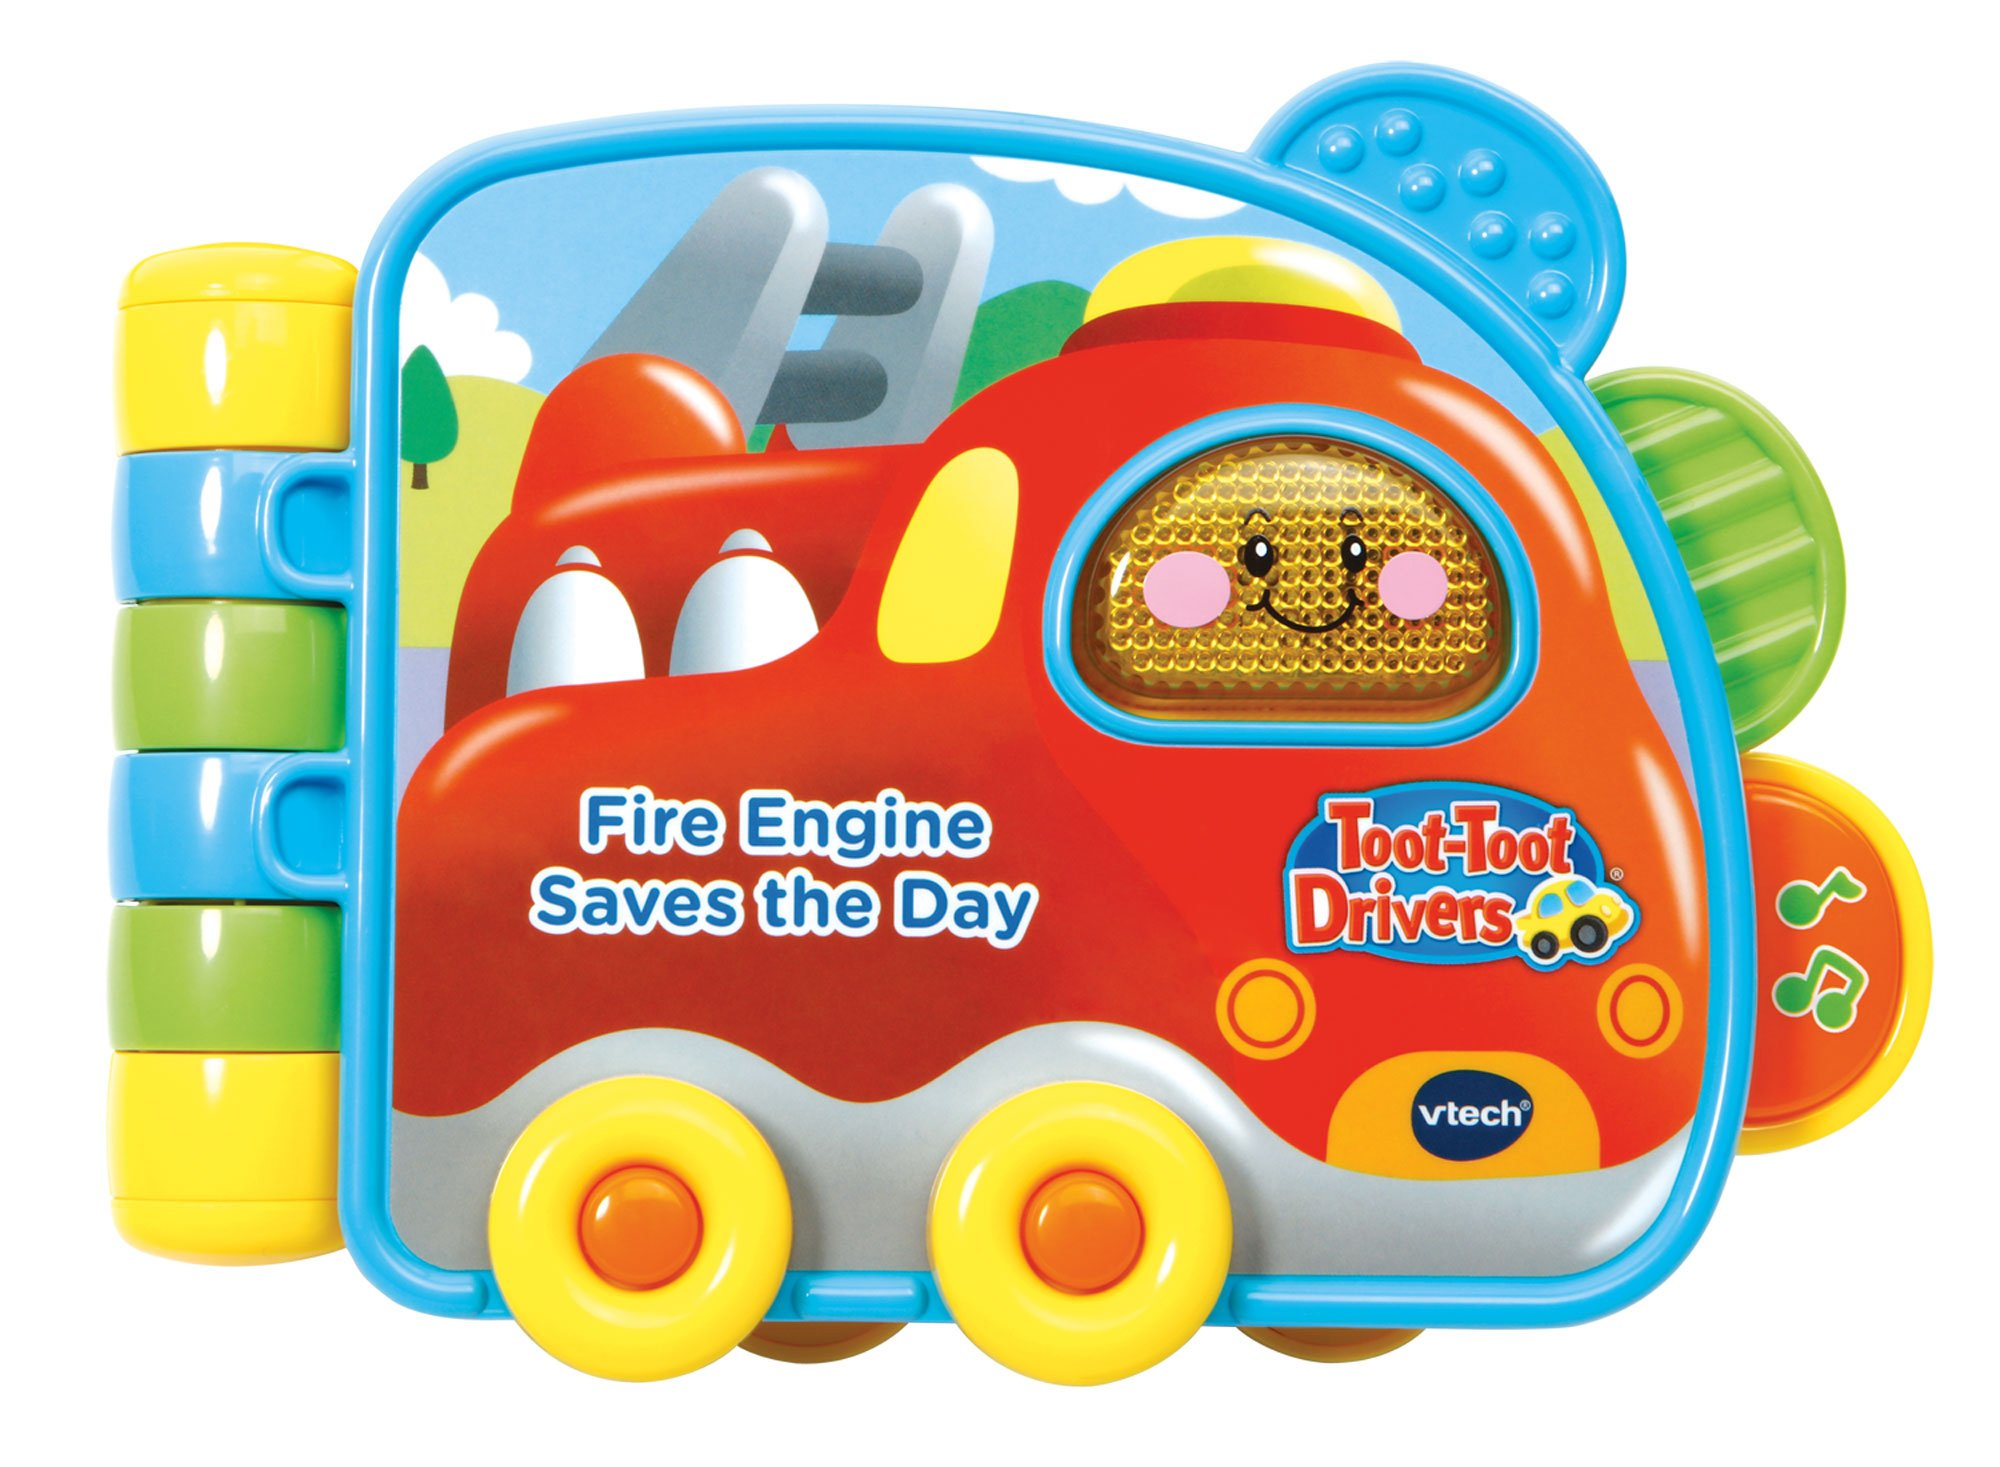 VTech 502003 ''Toot-Toot Drivers Fire Engine Book Toy